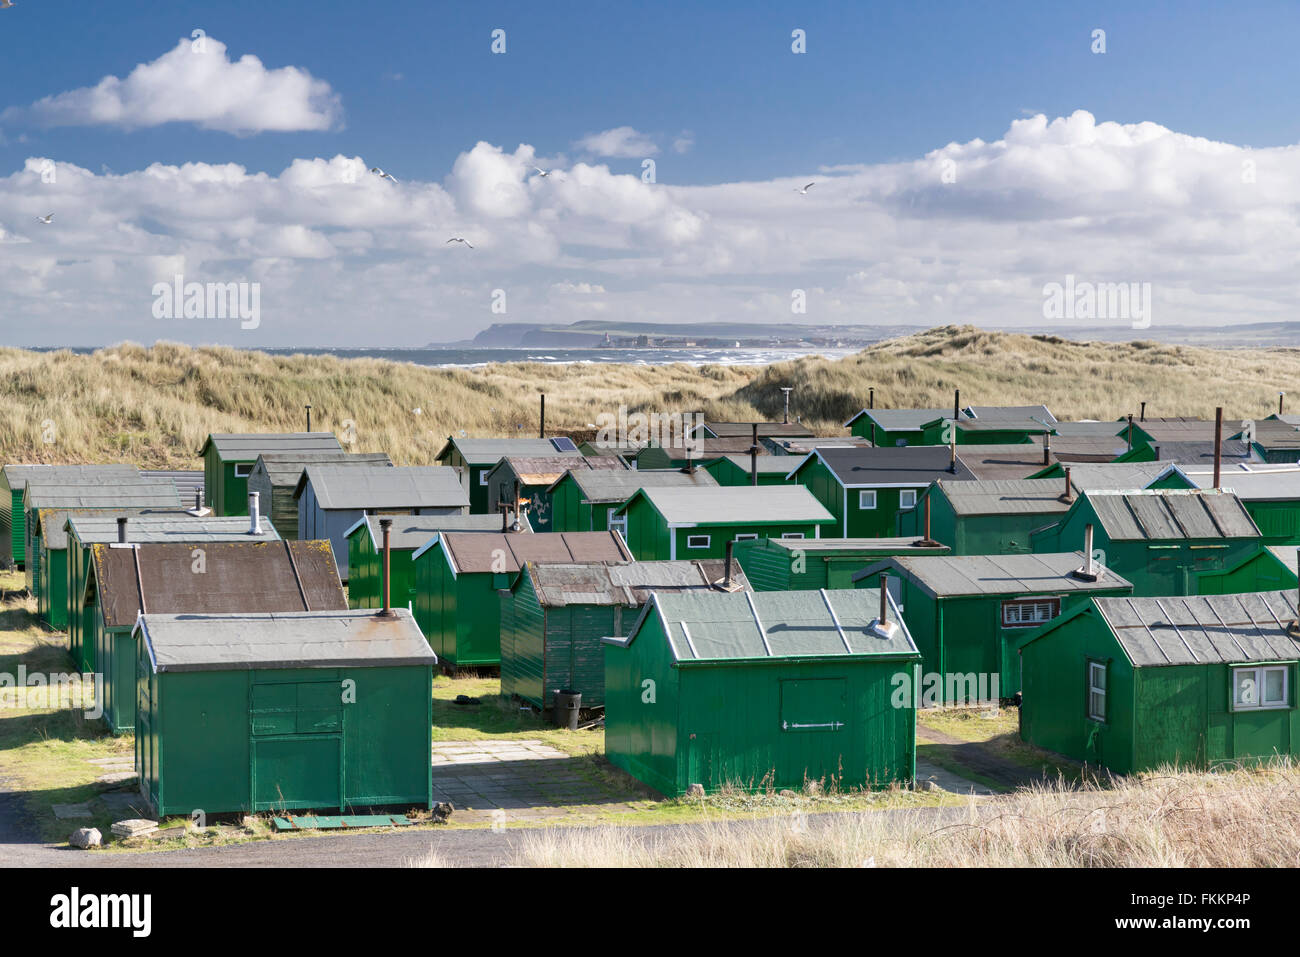 Fishermans Association Huts, South Gare, Redcar and Cleveland, February 2016 - Stock Image